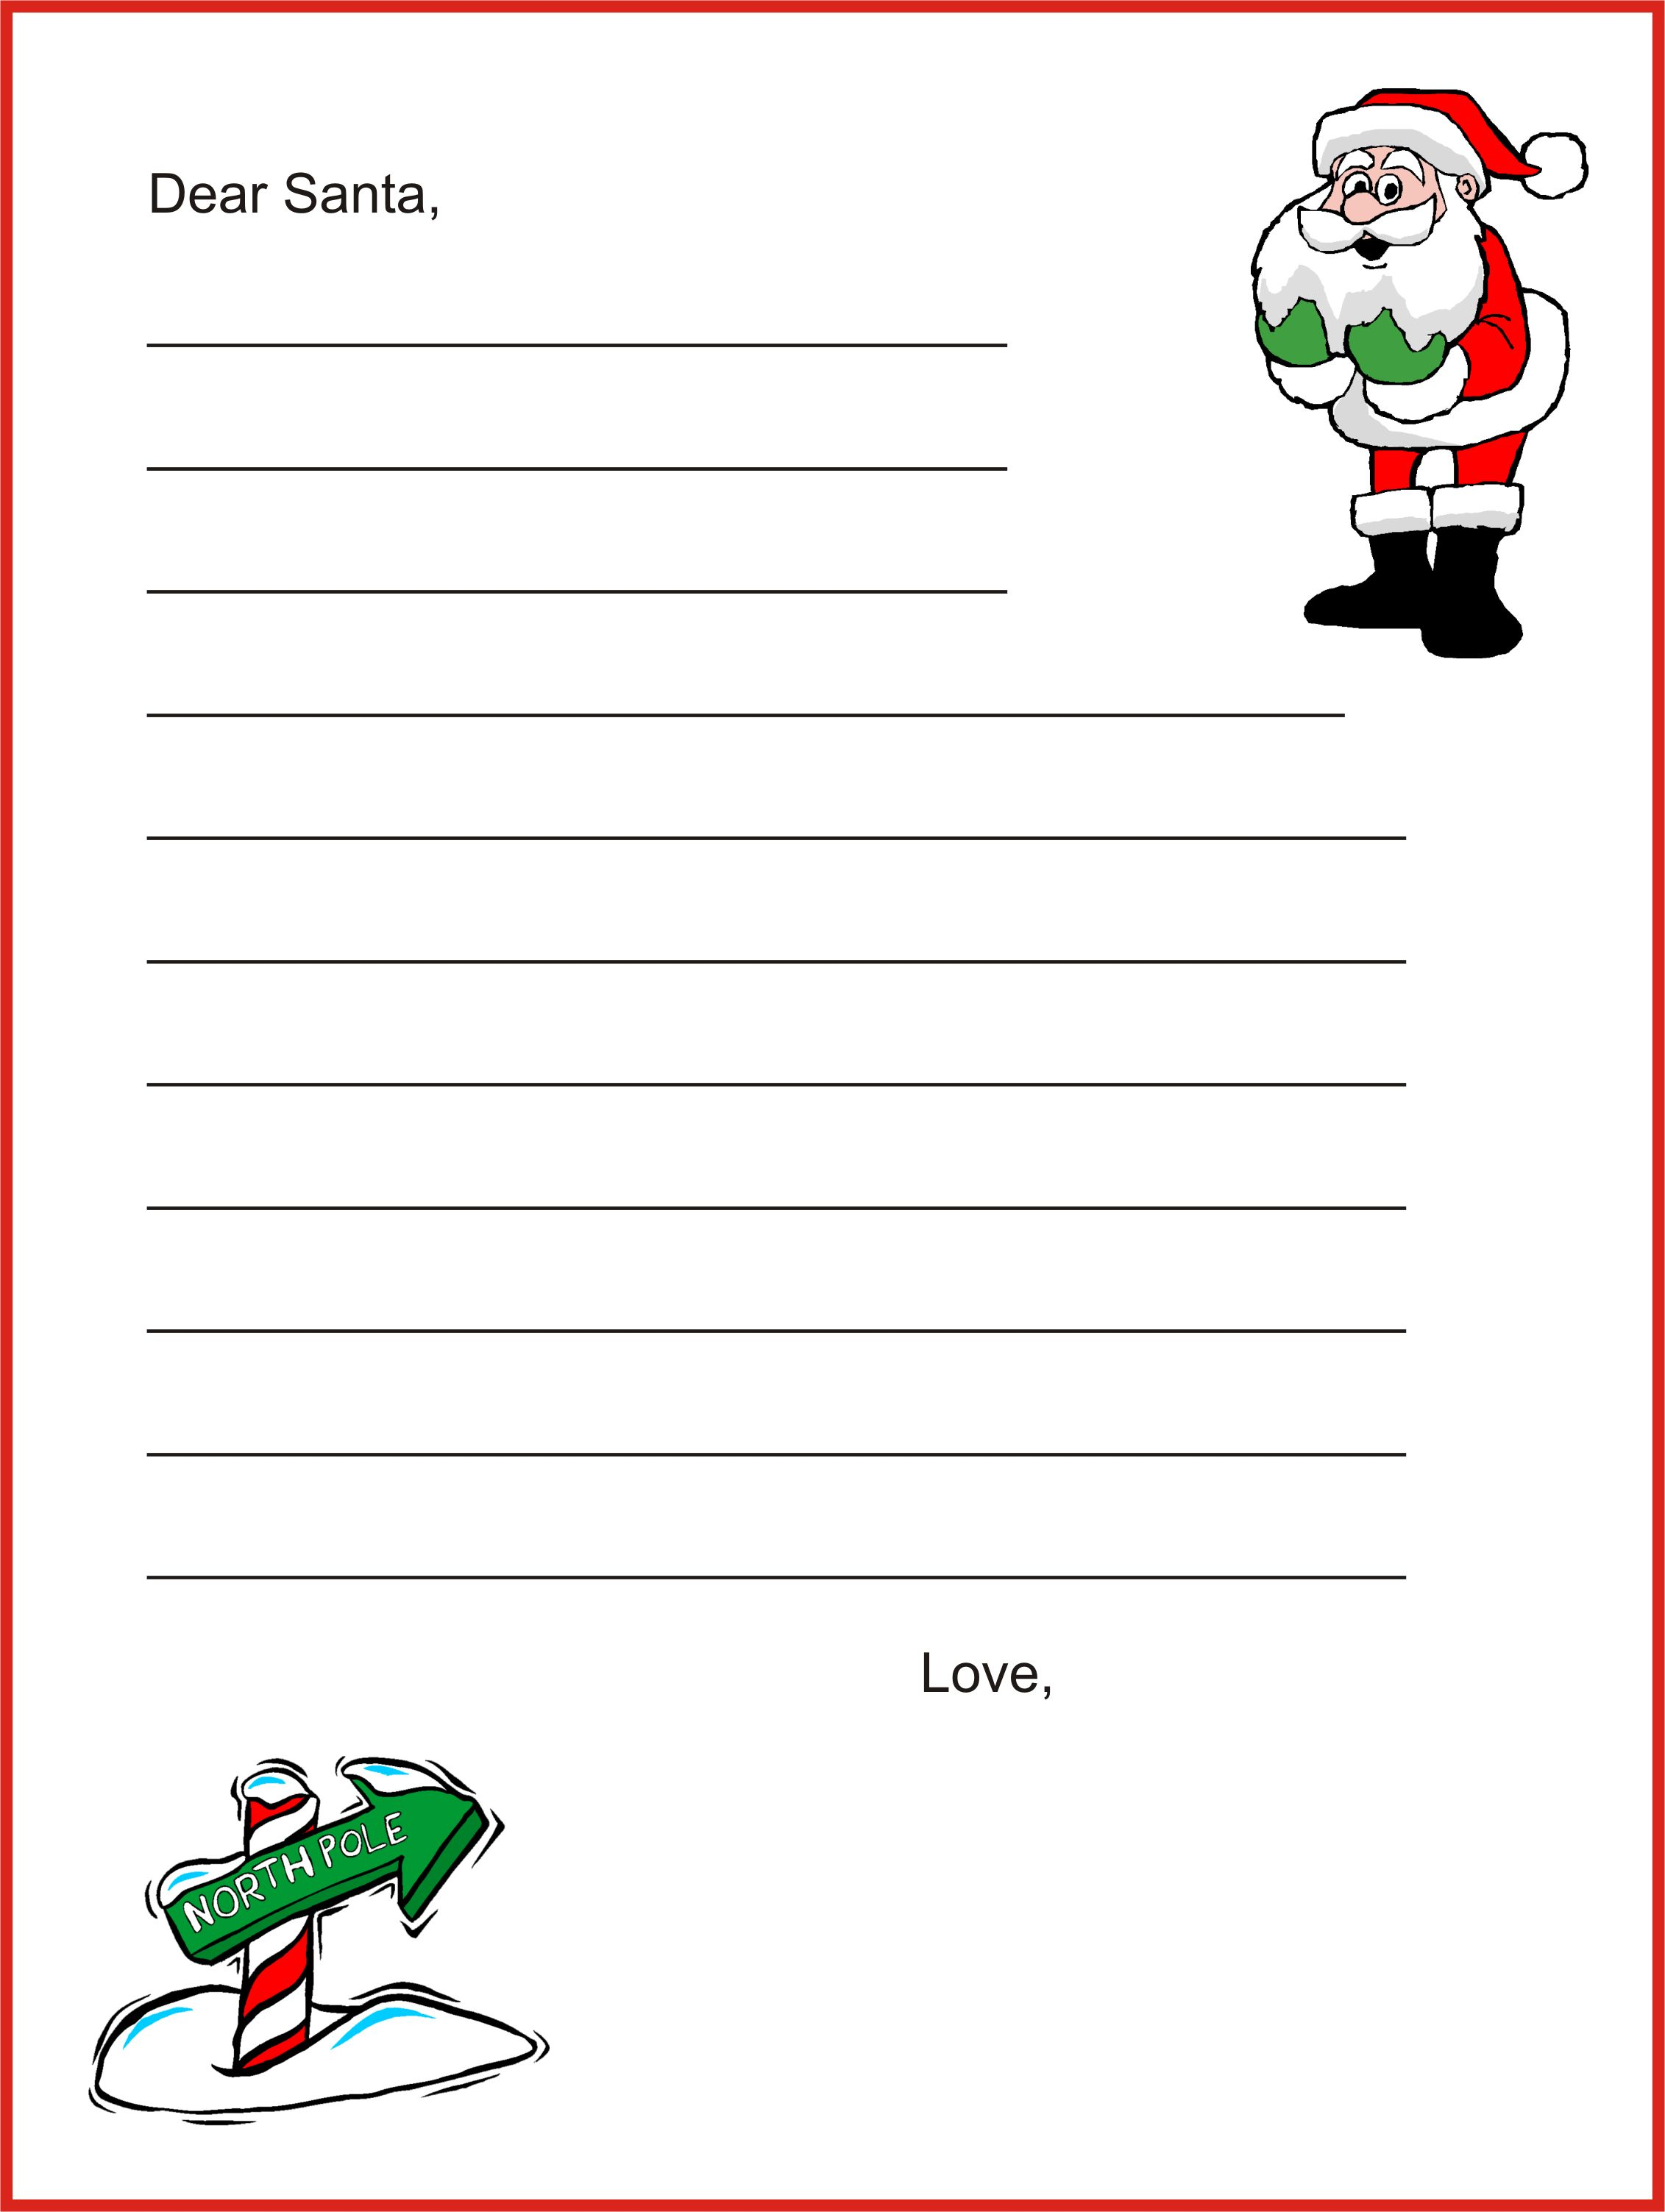 a free template for kids to write a letter to santa claus from christmas letter